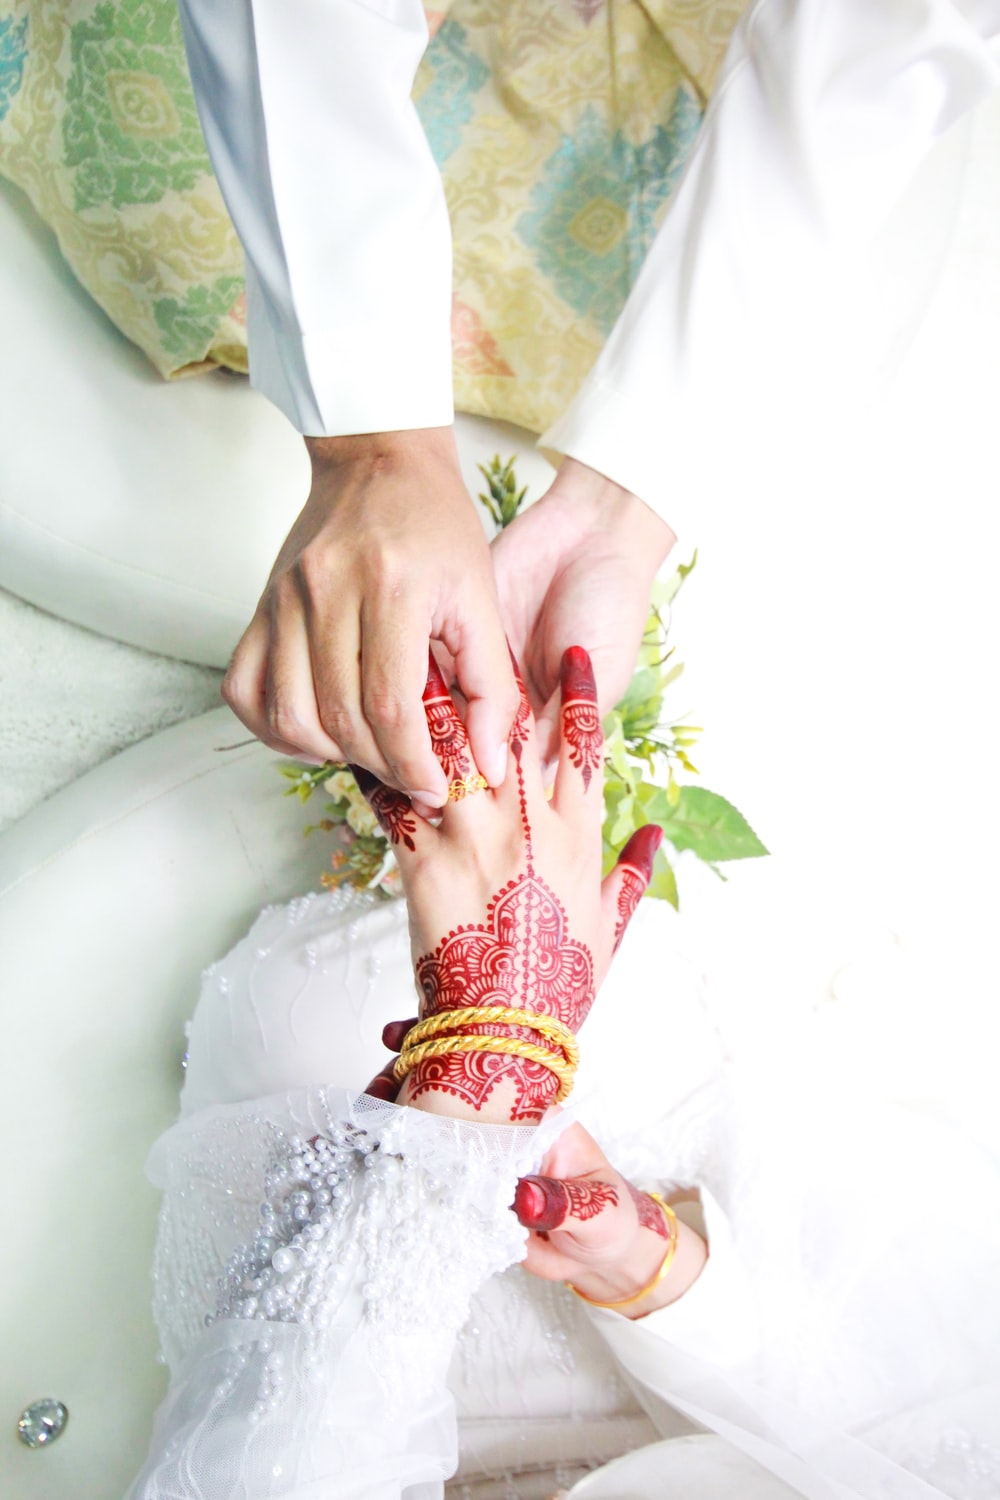 person holding hands with red Mendhi tattoo